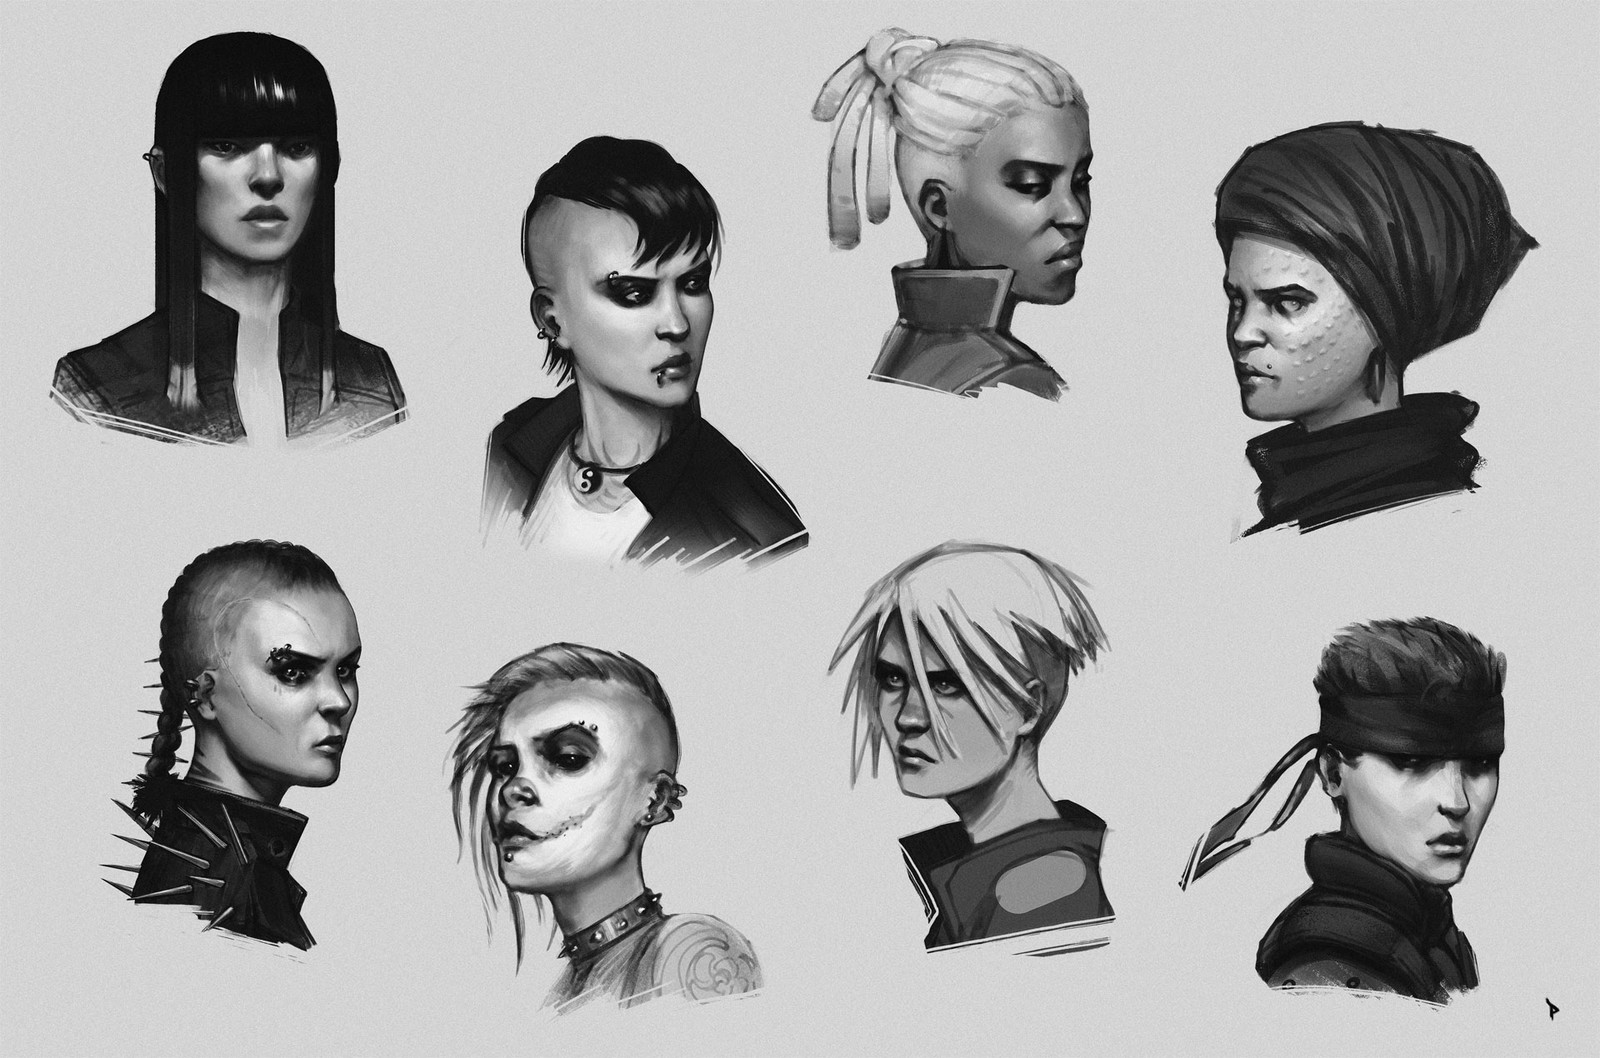 Some head exercises to try out different personalities. Maybe the 4 on the left belong to the same gang of punk outlaws. The rest are a bit more random, especially bottom right, which is obviously inspired by Solid Snake :)